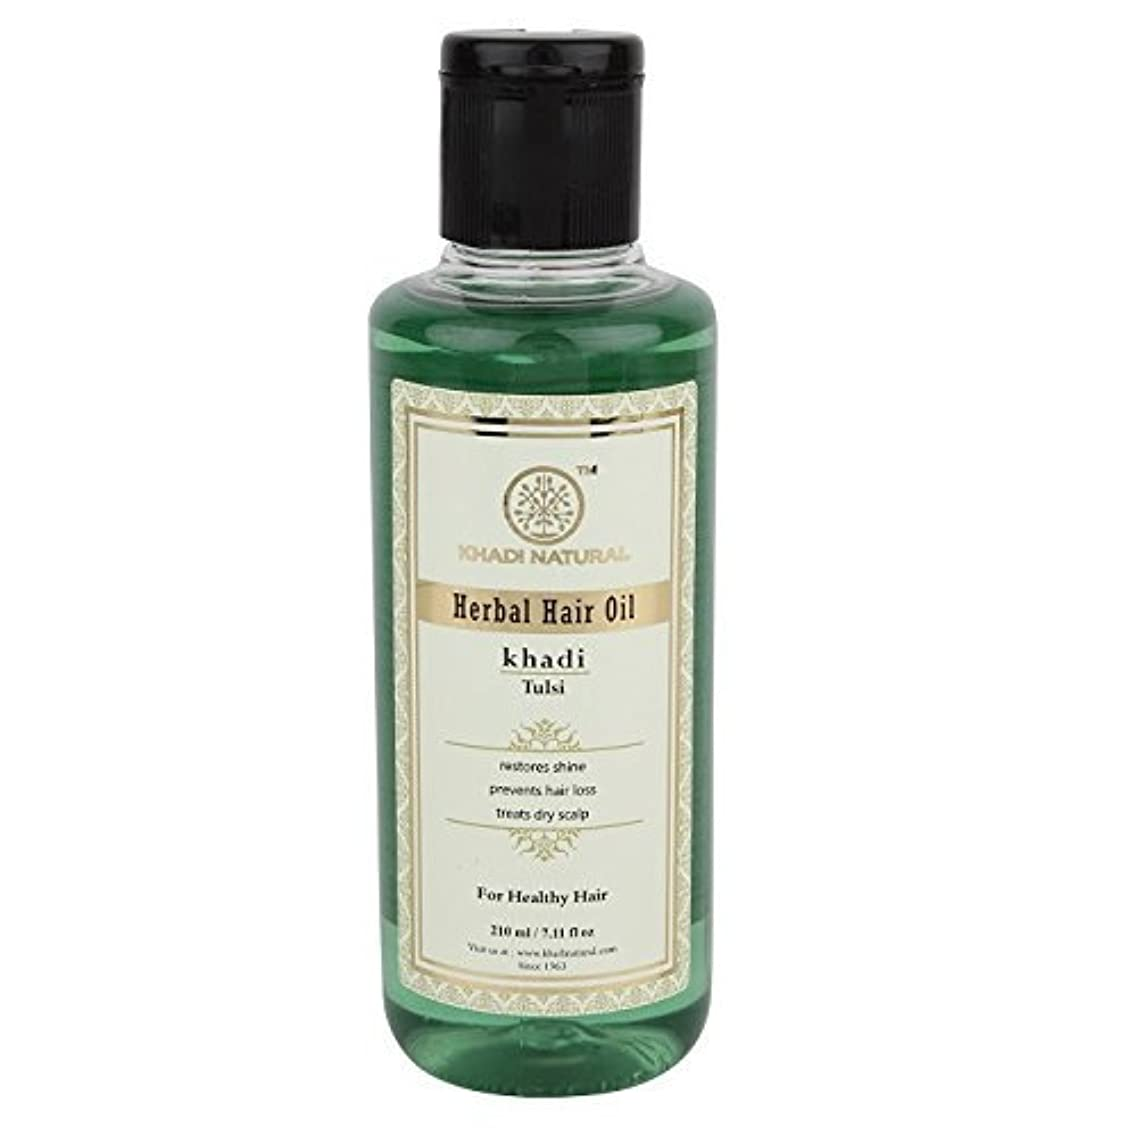 Khadi Tulsi Oil, 210ml